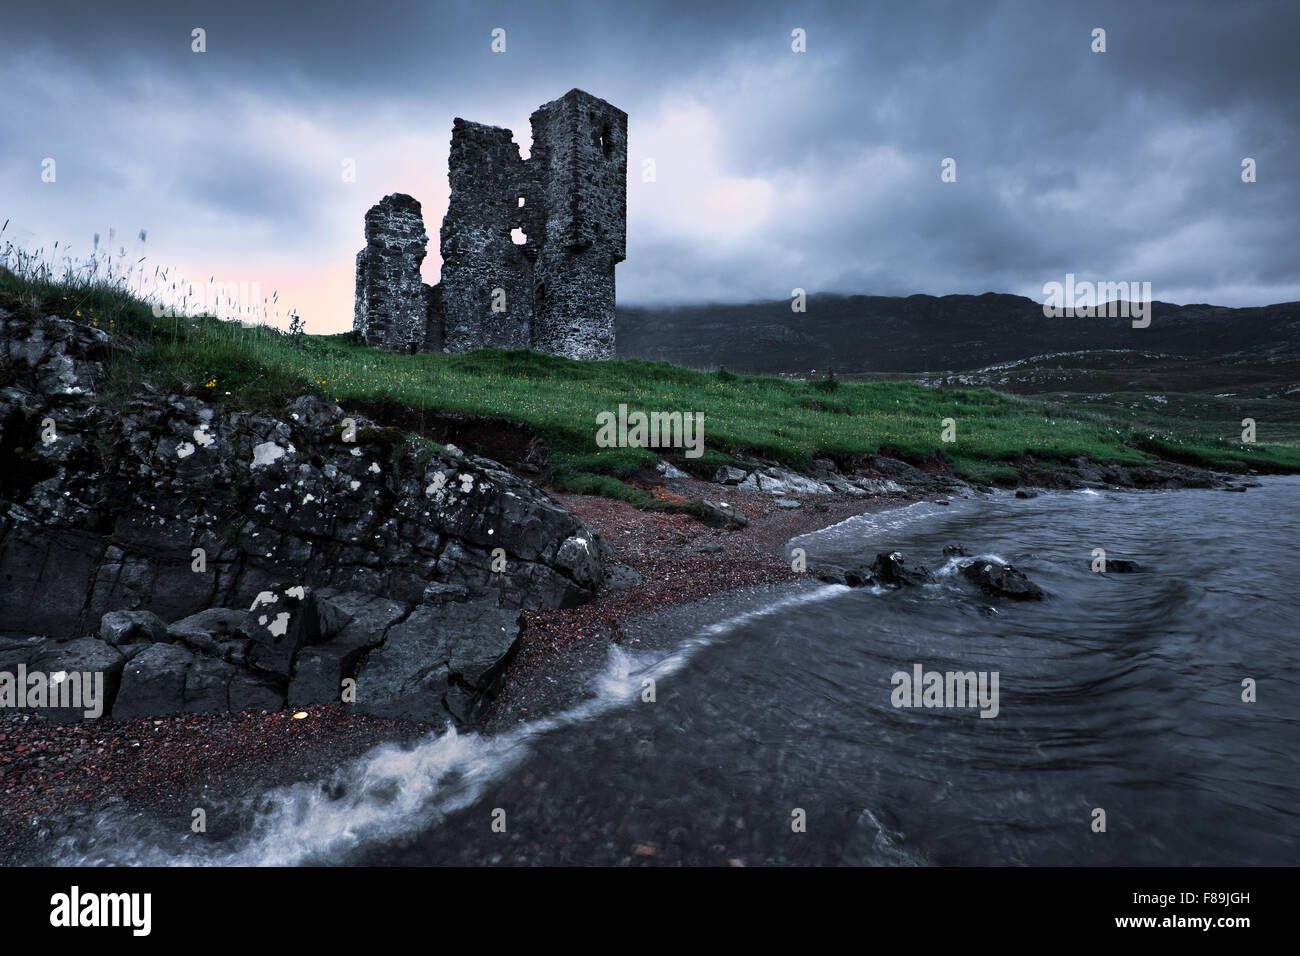 Ardvreck Castle, Highlands, Scotland, Europe - Stock Image